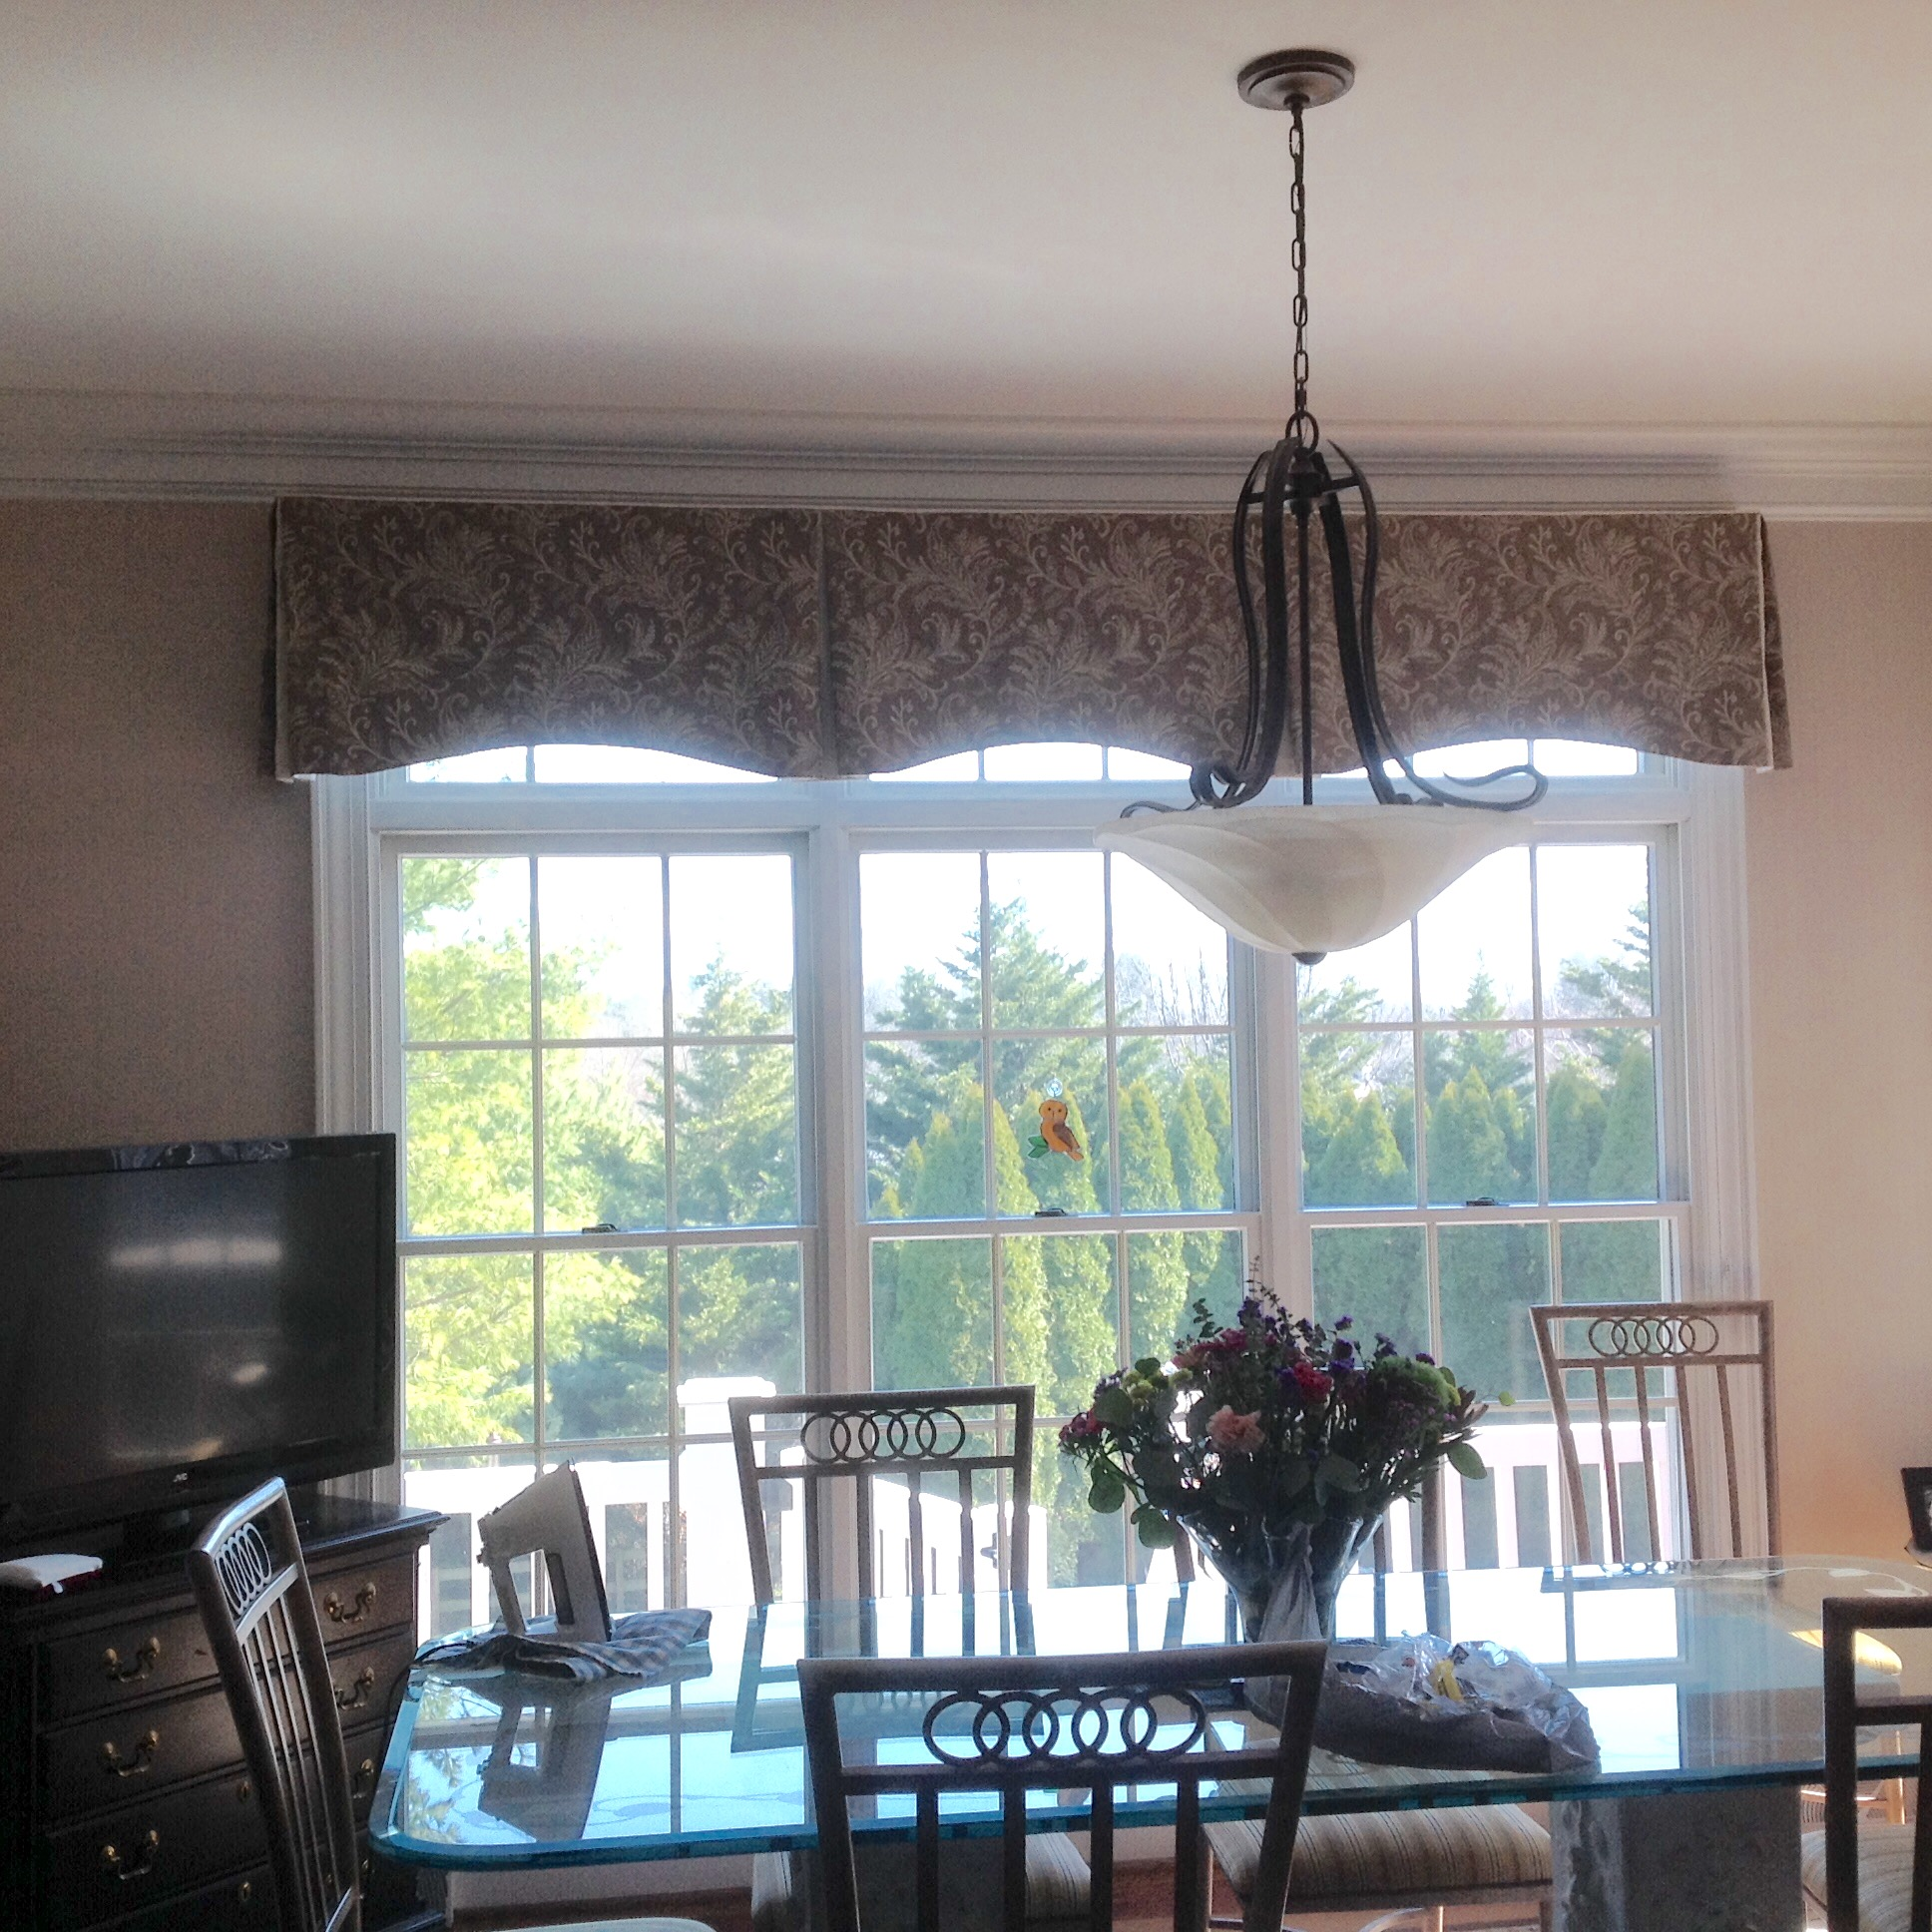 Box pleat arched treatment installed in kitchen dining area